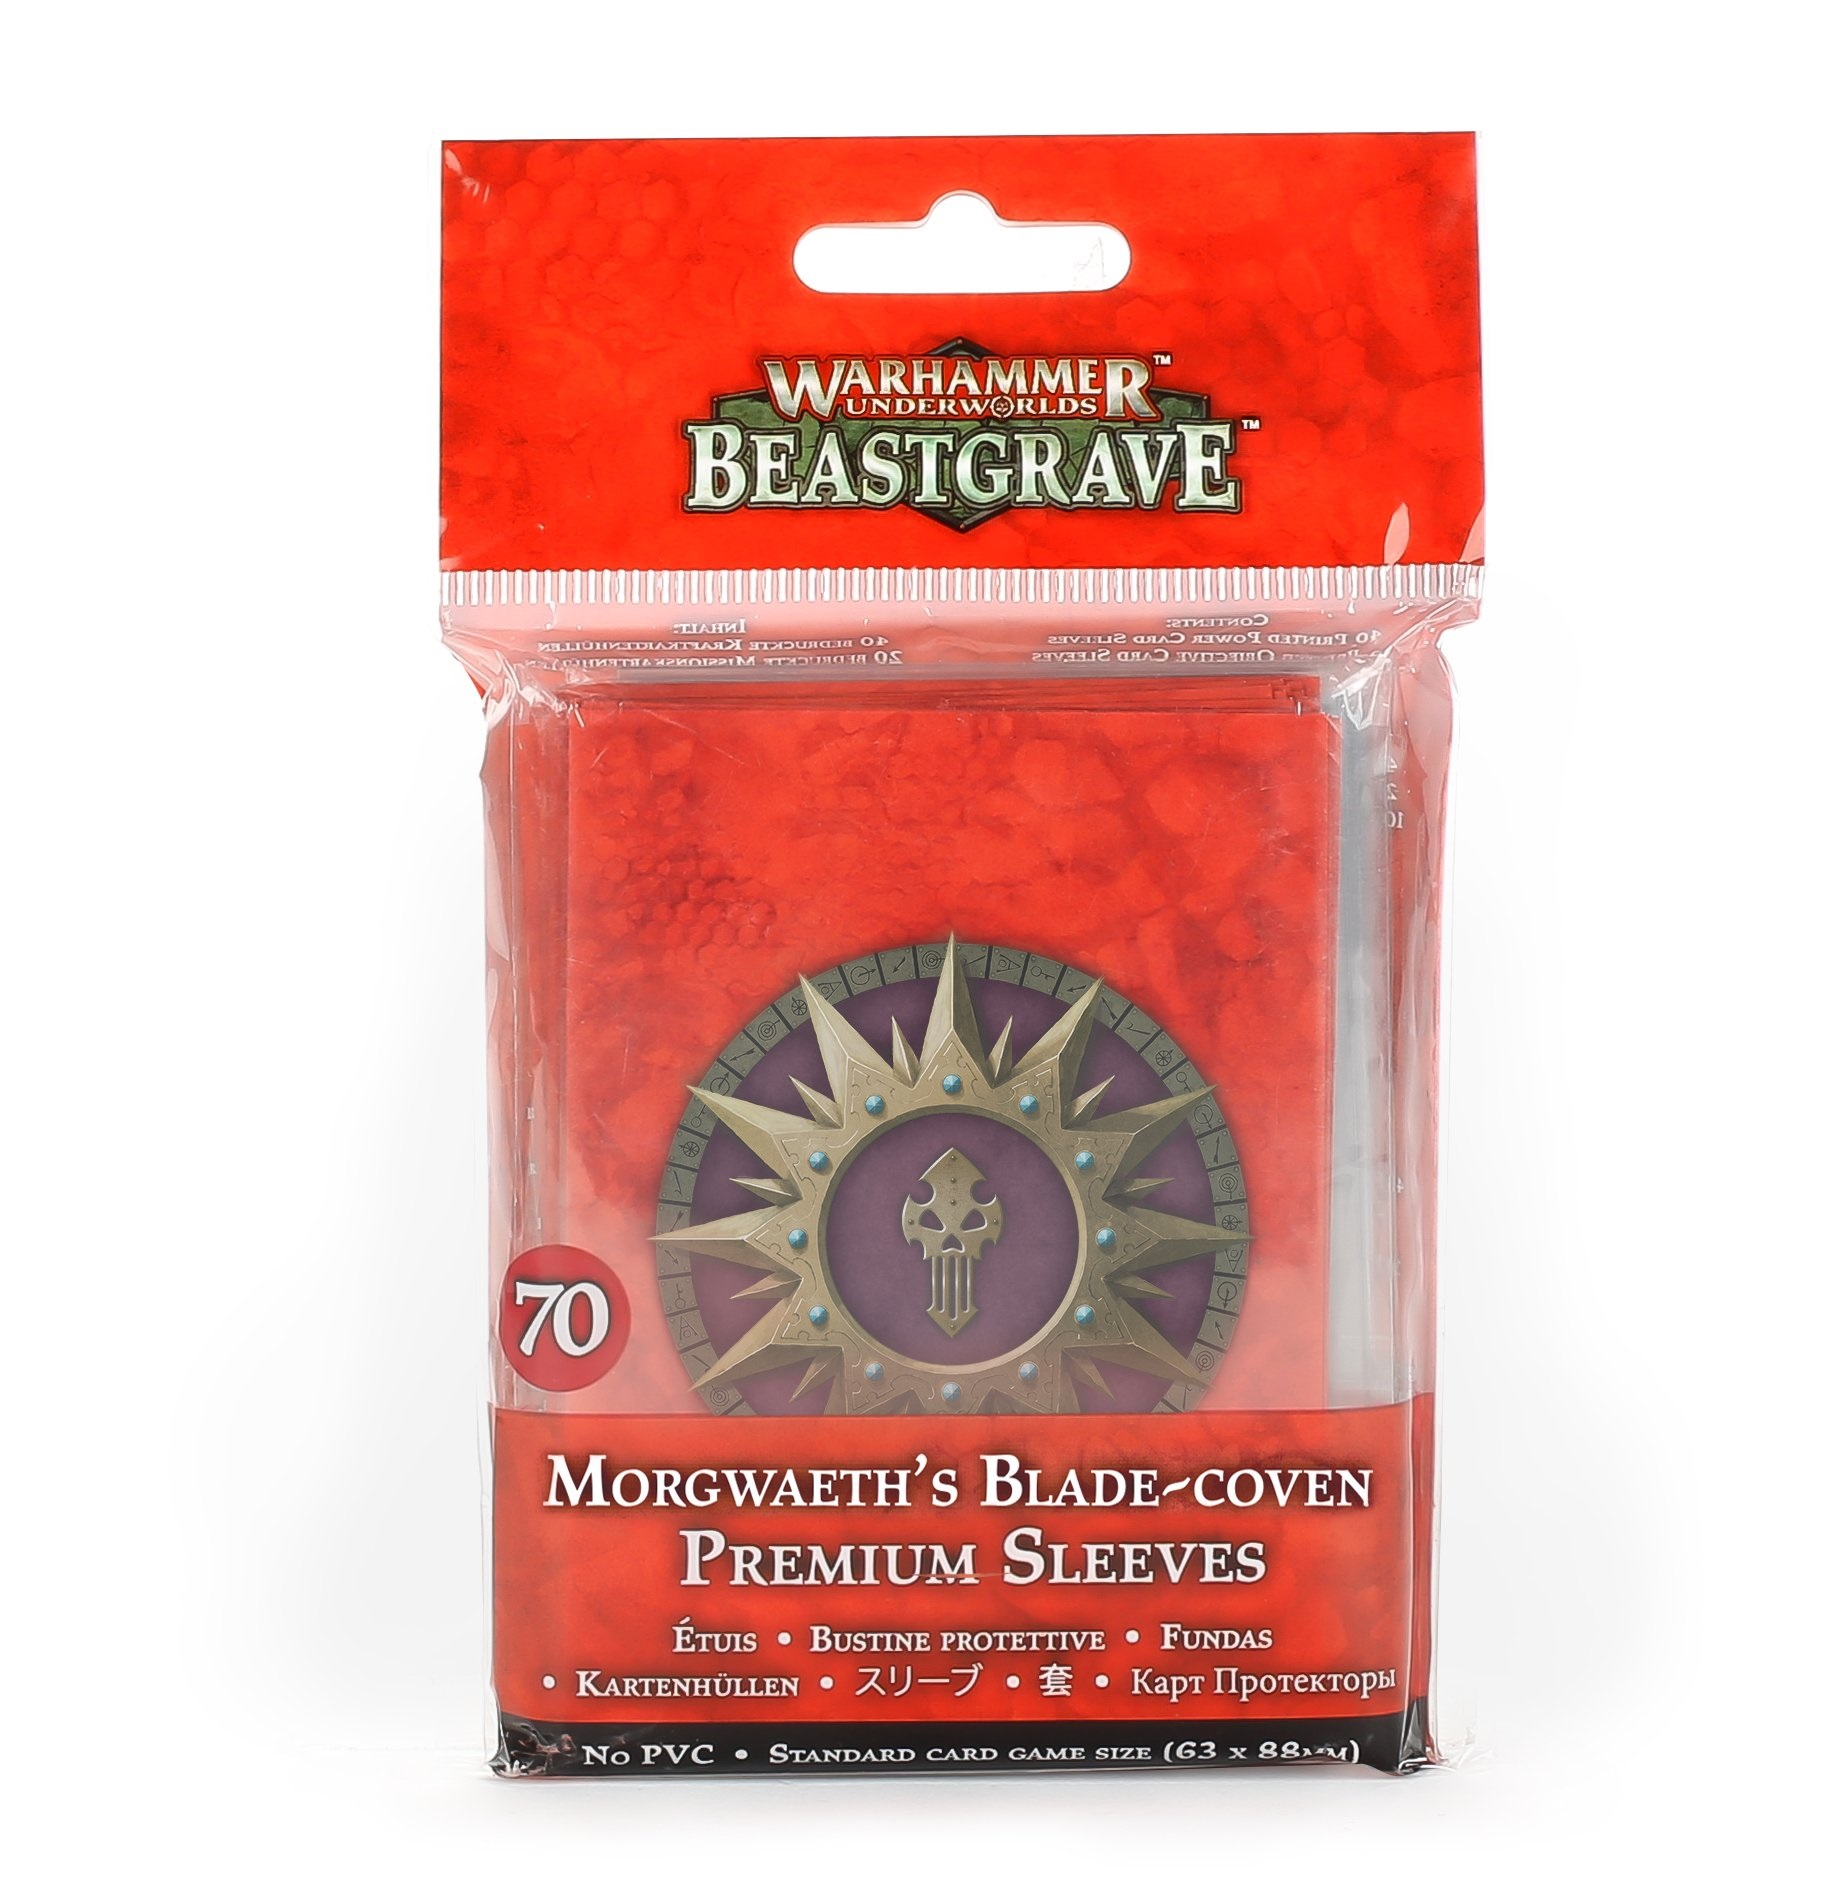 Morgwaeth's Blade-coven card sleeves